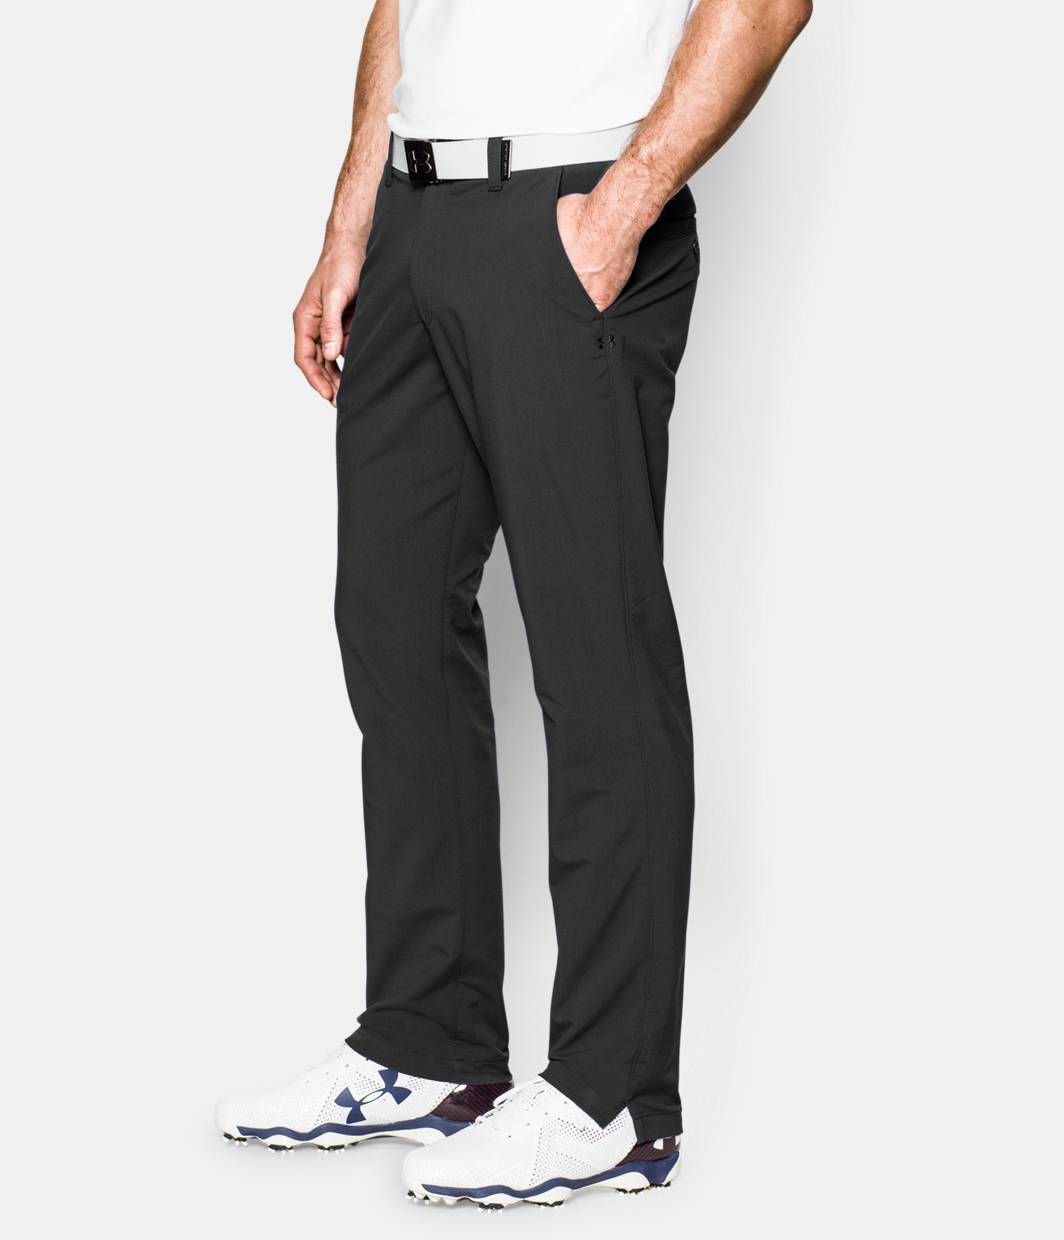 Men's UA Match Play Tapered Golf Pants | Under Armour US